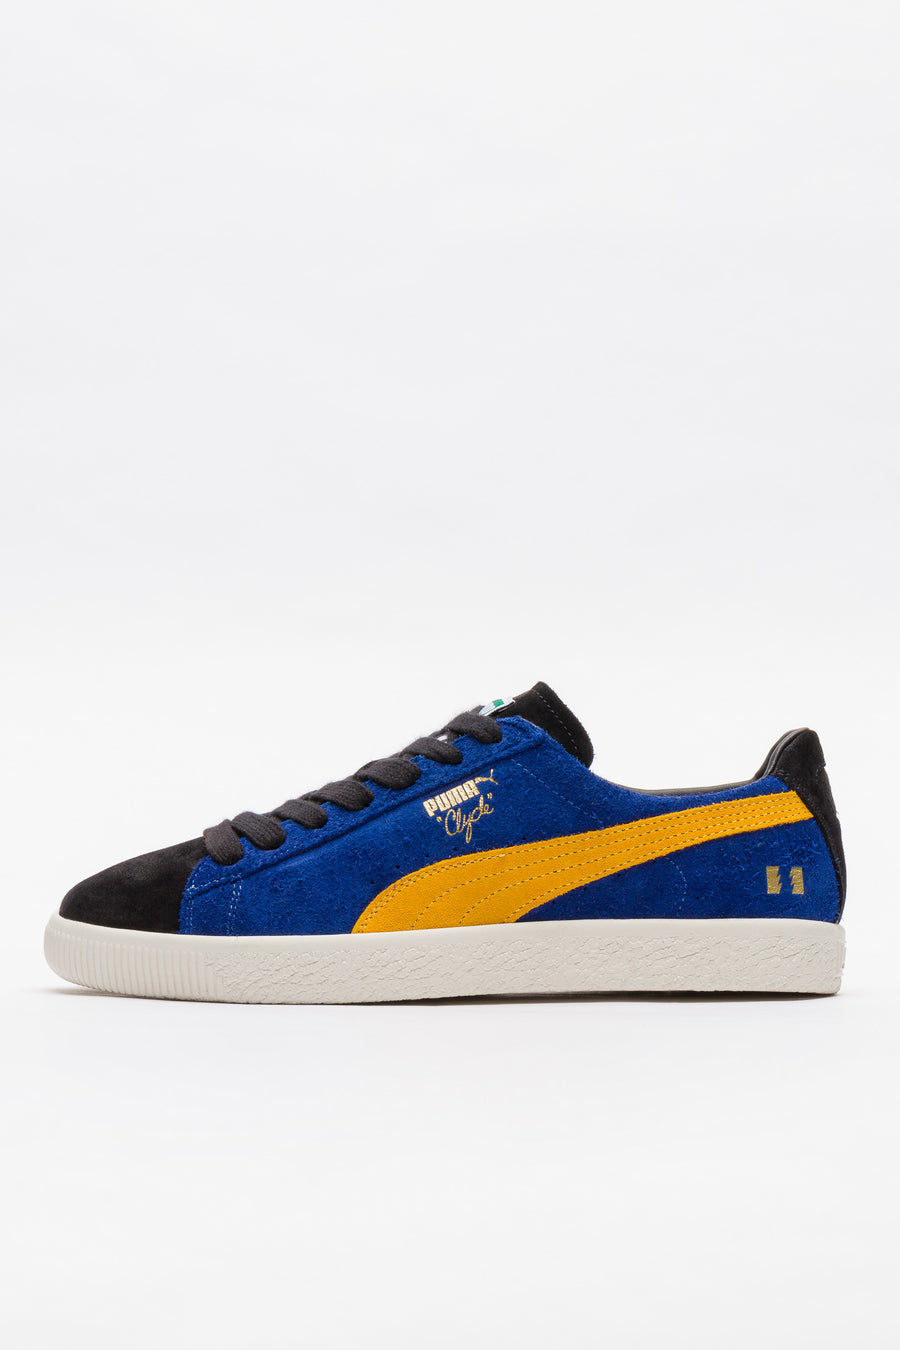 Clyde x The Hundreds in Sodalite Blue